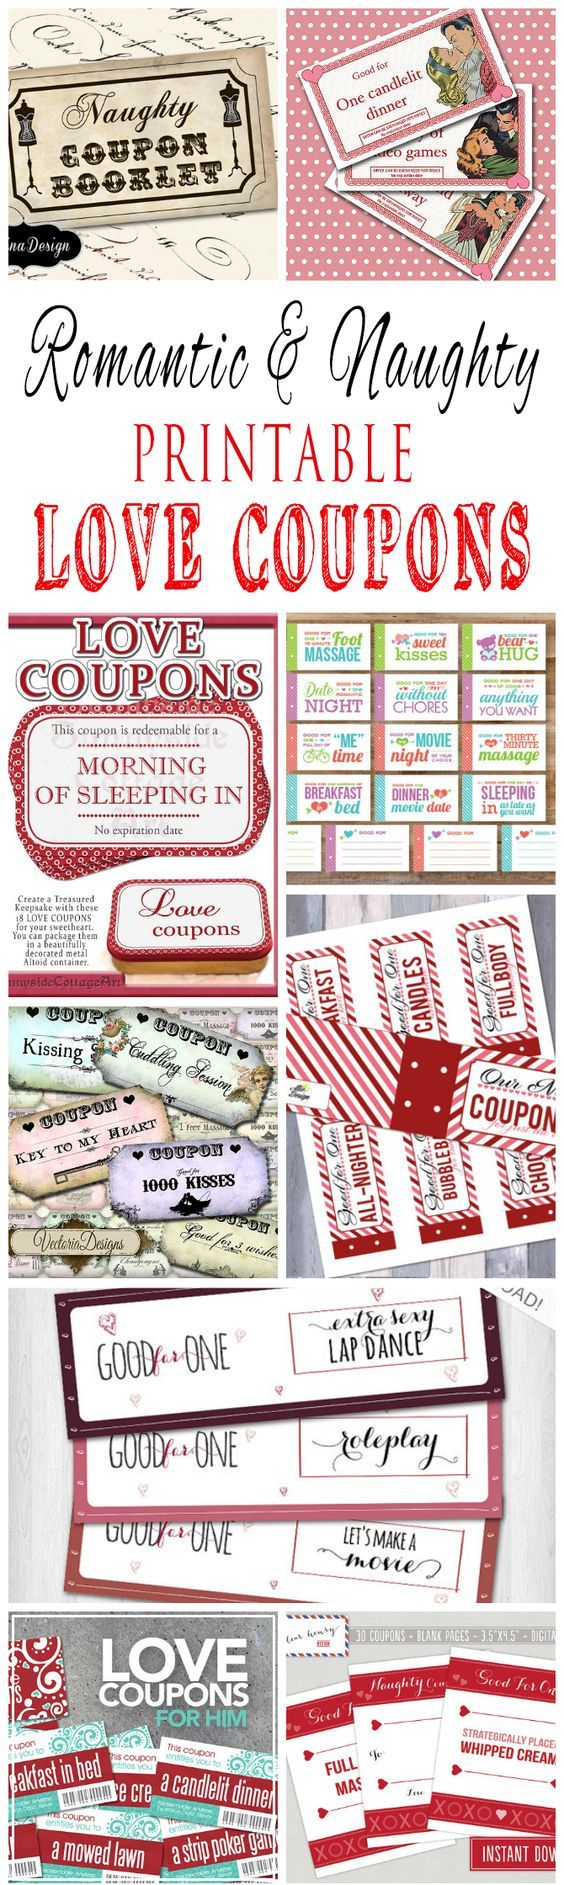 coupon book for boyfriend examples